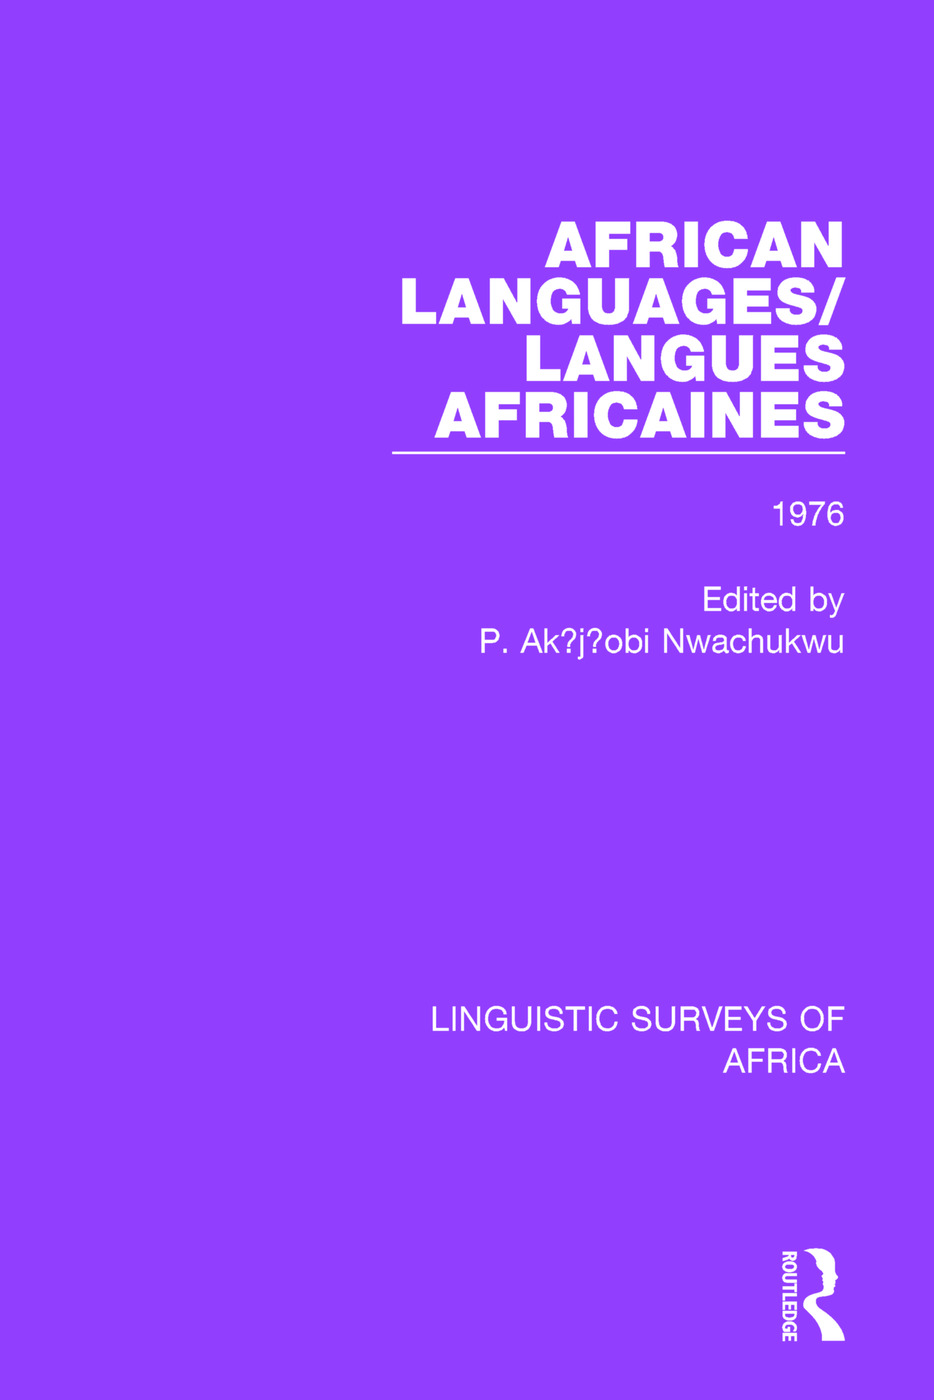 African Languages/Langues Africaines: Volume 2 1976 book cover